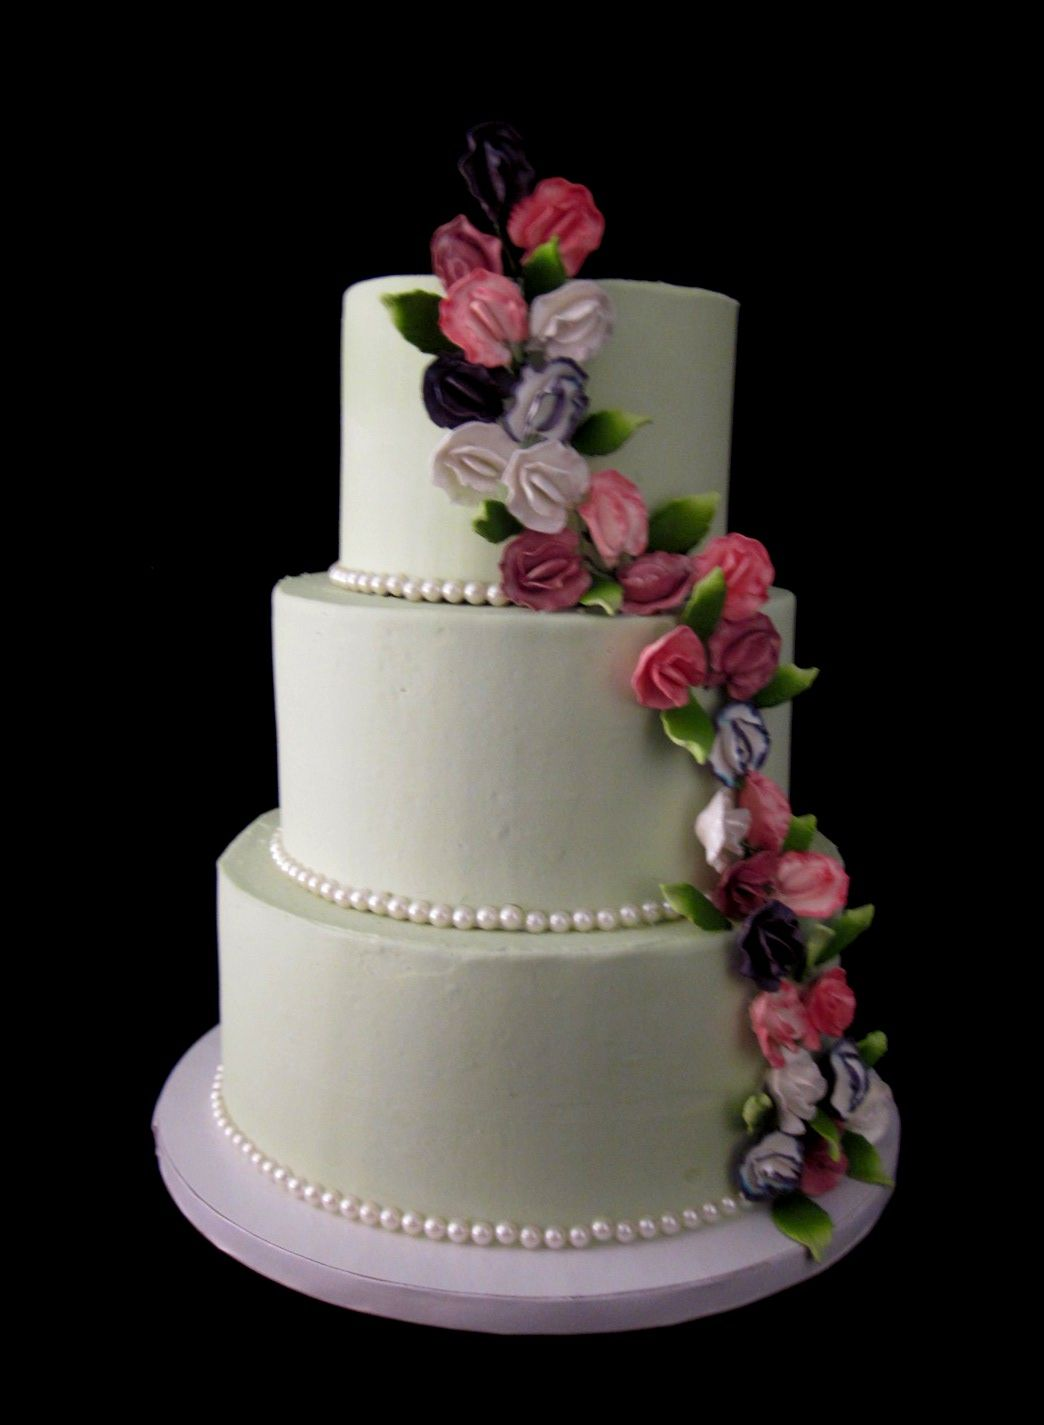 Google Image Result for http://thetwistedsifter.files.wordpress.com/2011/11/sweet-pea-wedding-cake-by-the-twisted-sifter.jpg